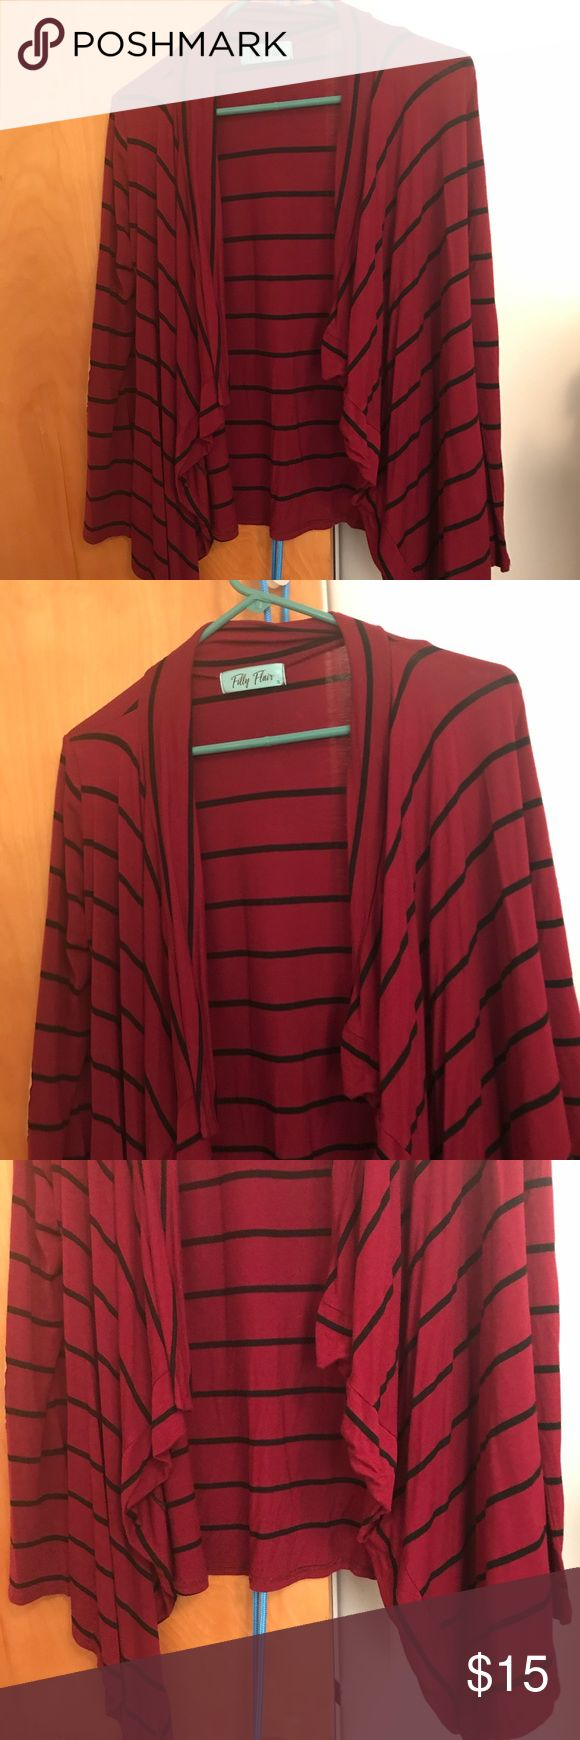 Filly Flair Red Striped Flowy Cardigan Size Small This beautiful red cardigan is a must have! Perfect for layering up in those cold winter months! Cutest elbow patches and very comfortable! ❤️❤️❤️ Only worn once! Fits true to Size! ❤️❤️❤️  Buy 4 items get 1 free! 💕💕💕Lowest priced item is free! 💕💕💕 I have lots of $3 items and makeup accessories! Happy Poshing! 💕💕💕 Filly Flair Sweaters Cardigans